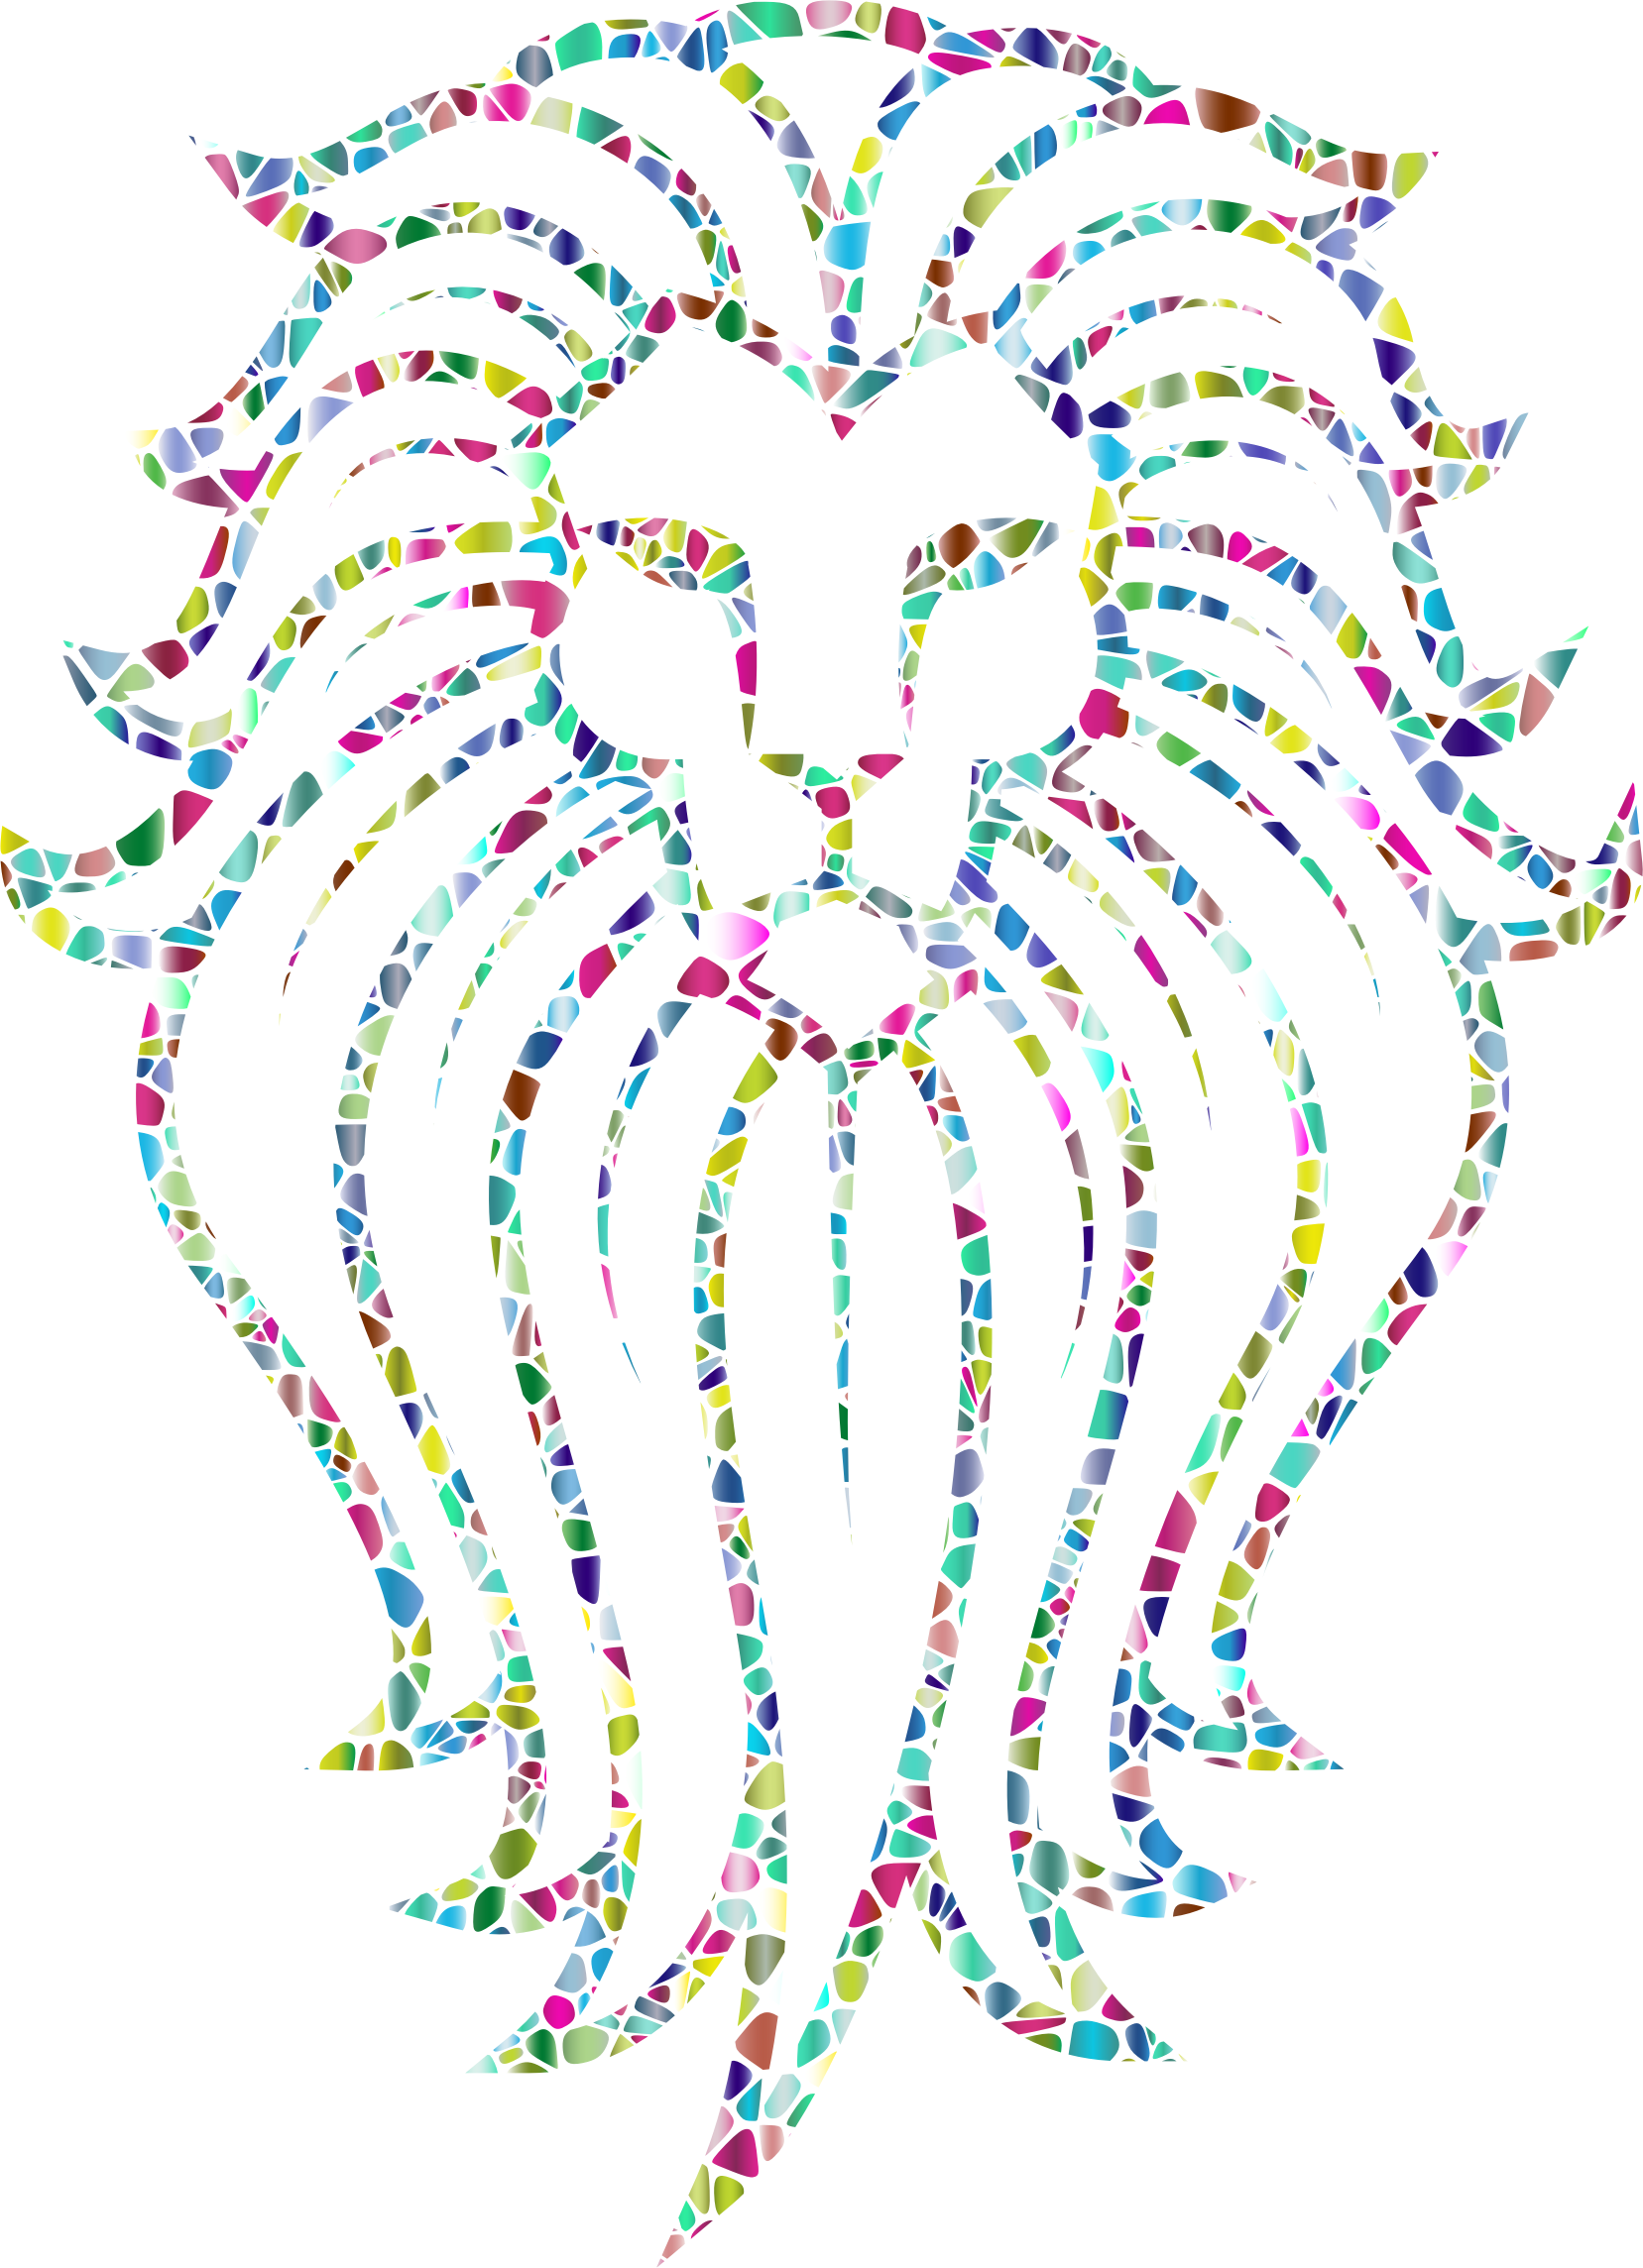 Polyprismatic Tiled Lion Face Tattoo by GDJ